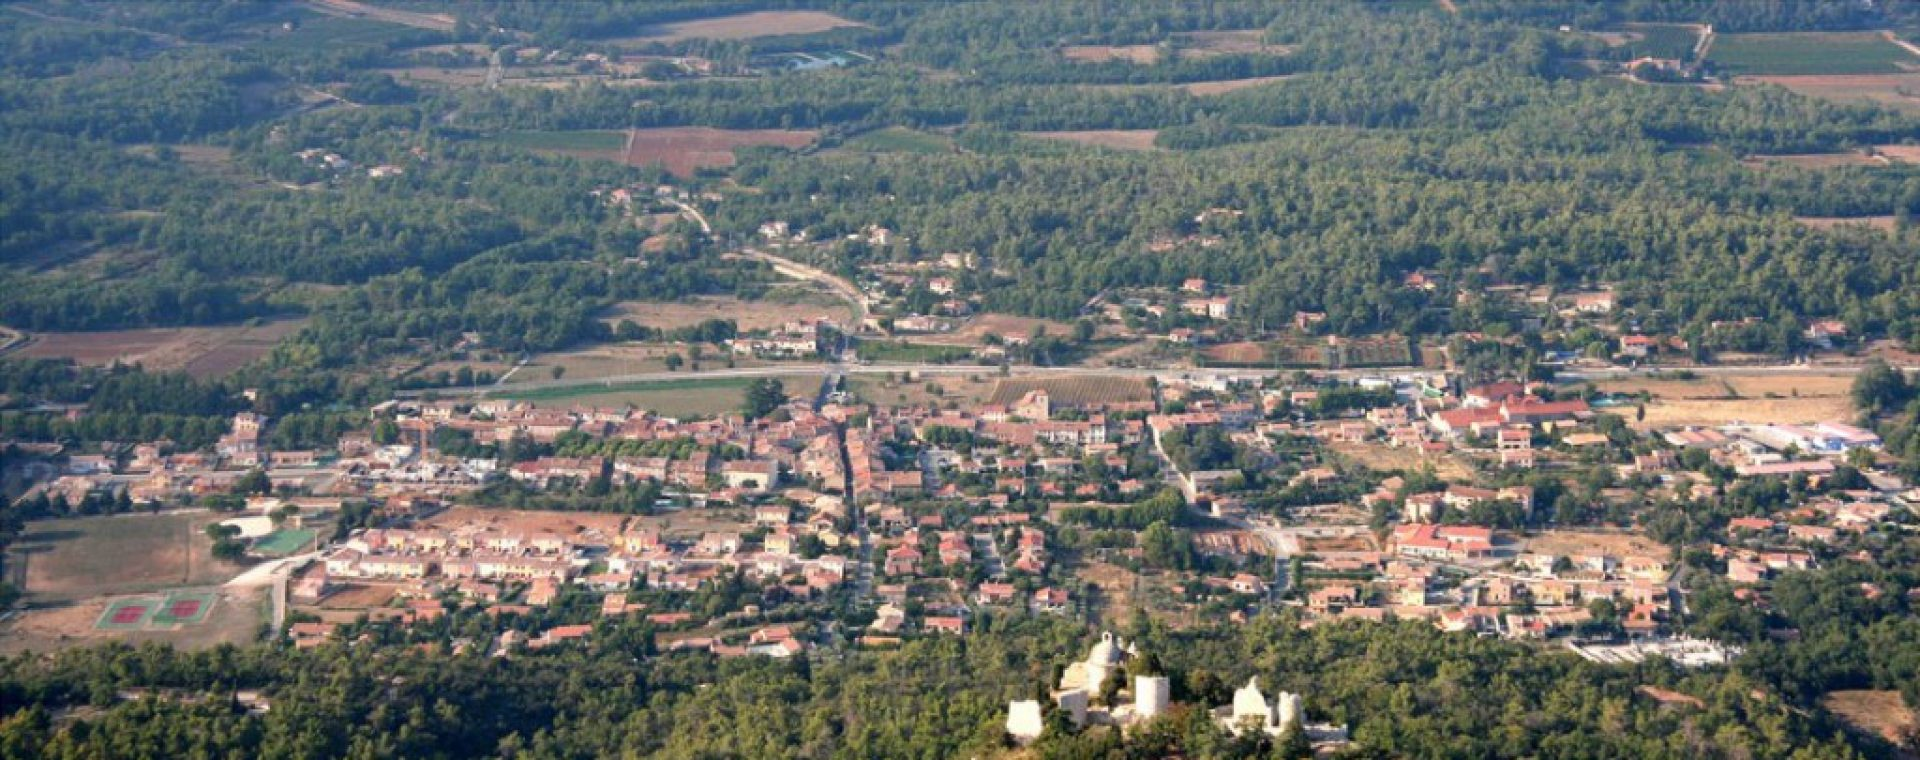 Village de Rougiers